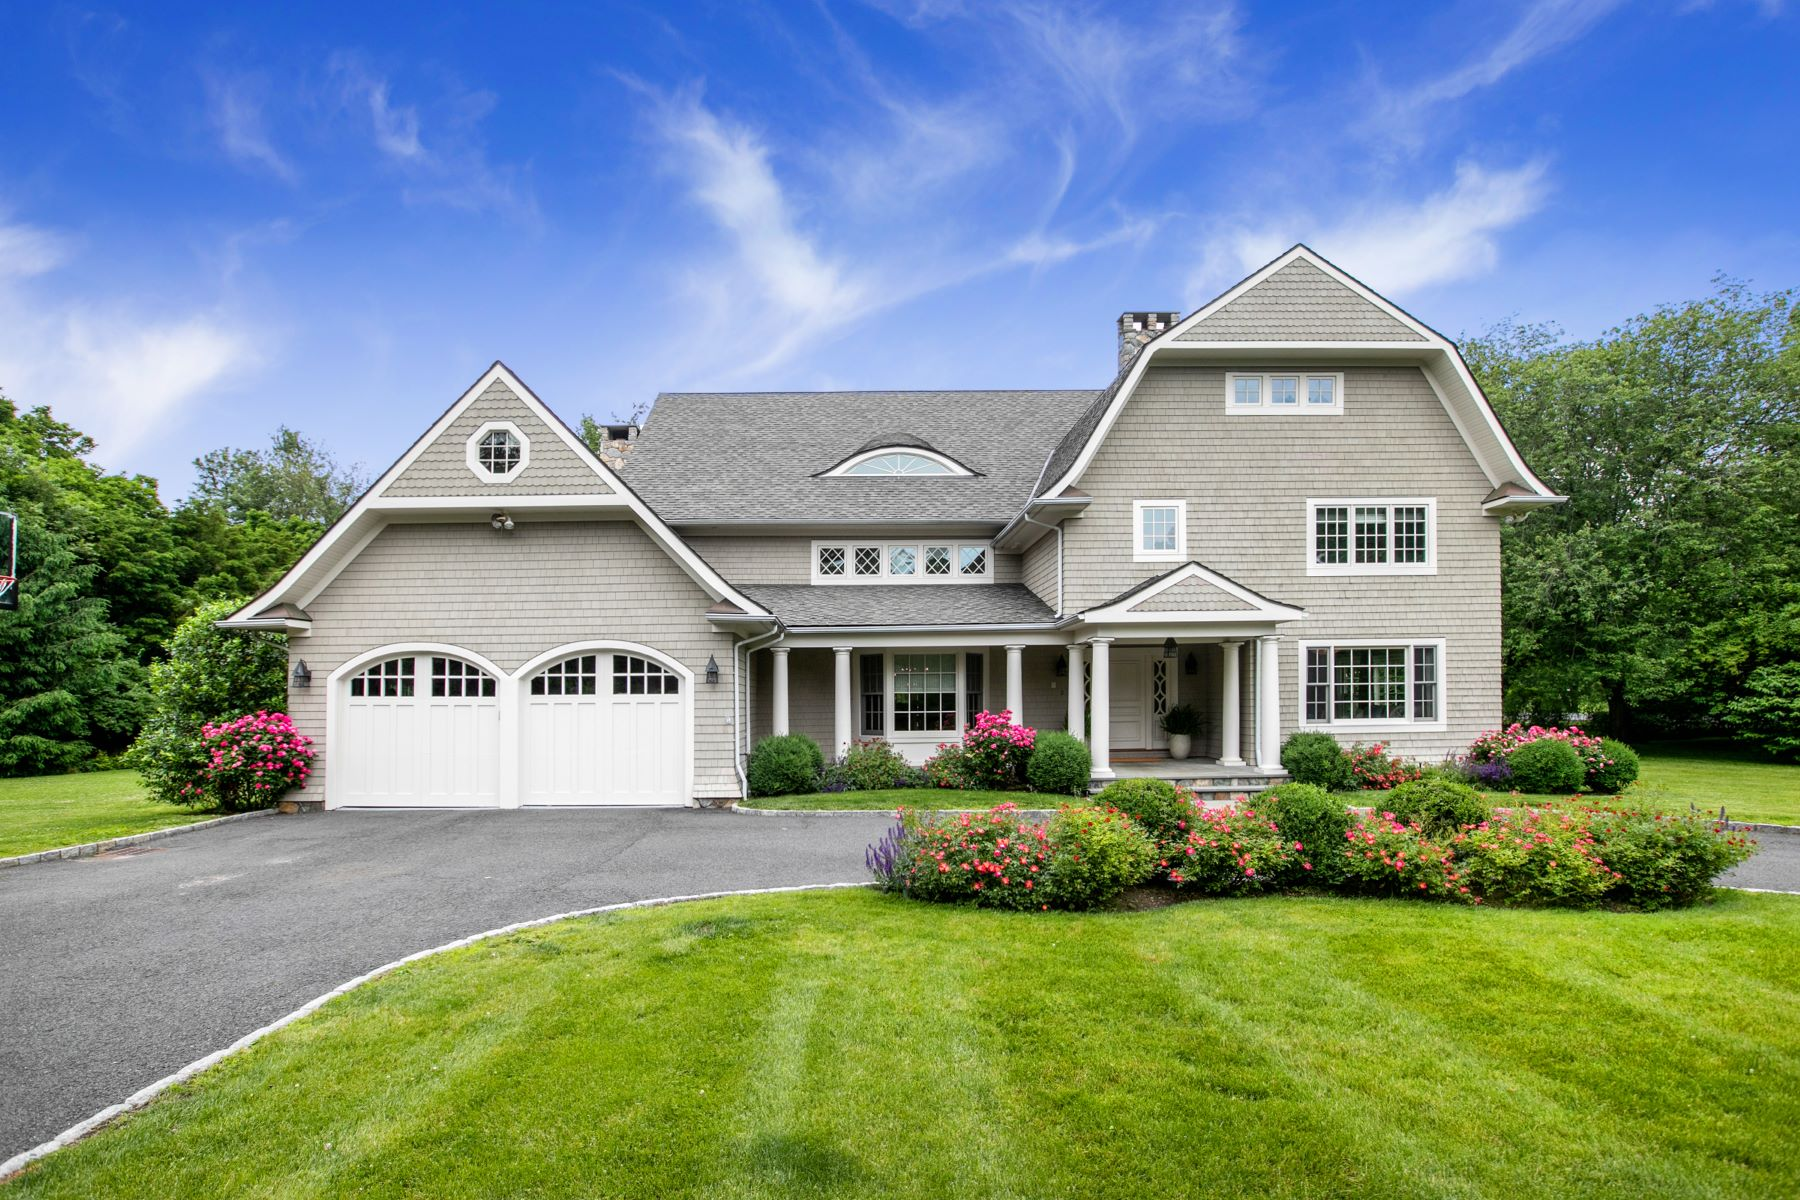 Single Family Homes for Sale at 2 Magnolia Place Rye, New York 10580 United States